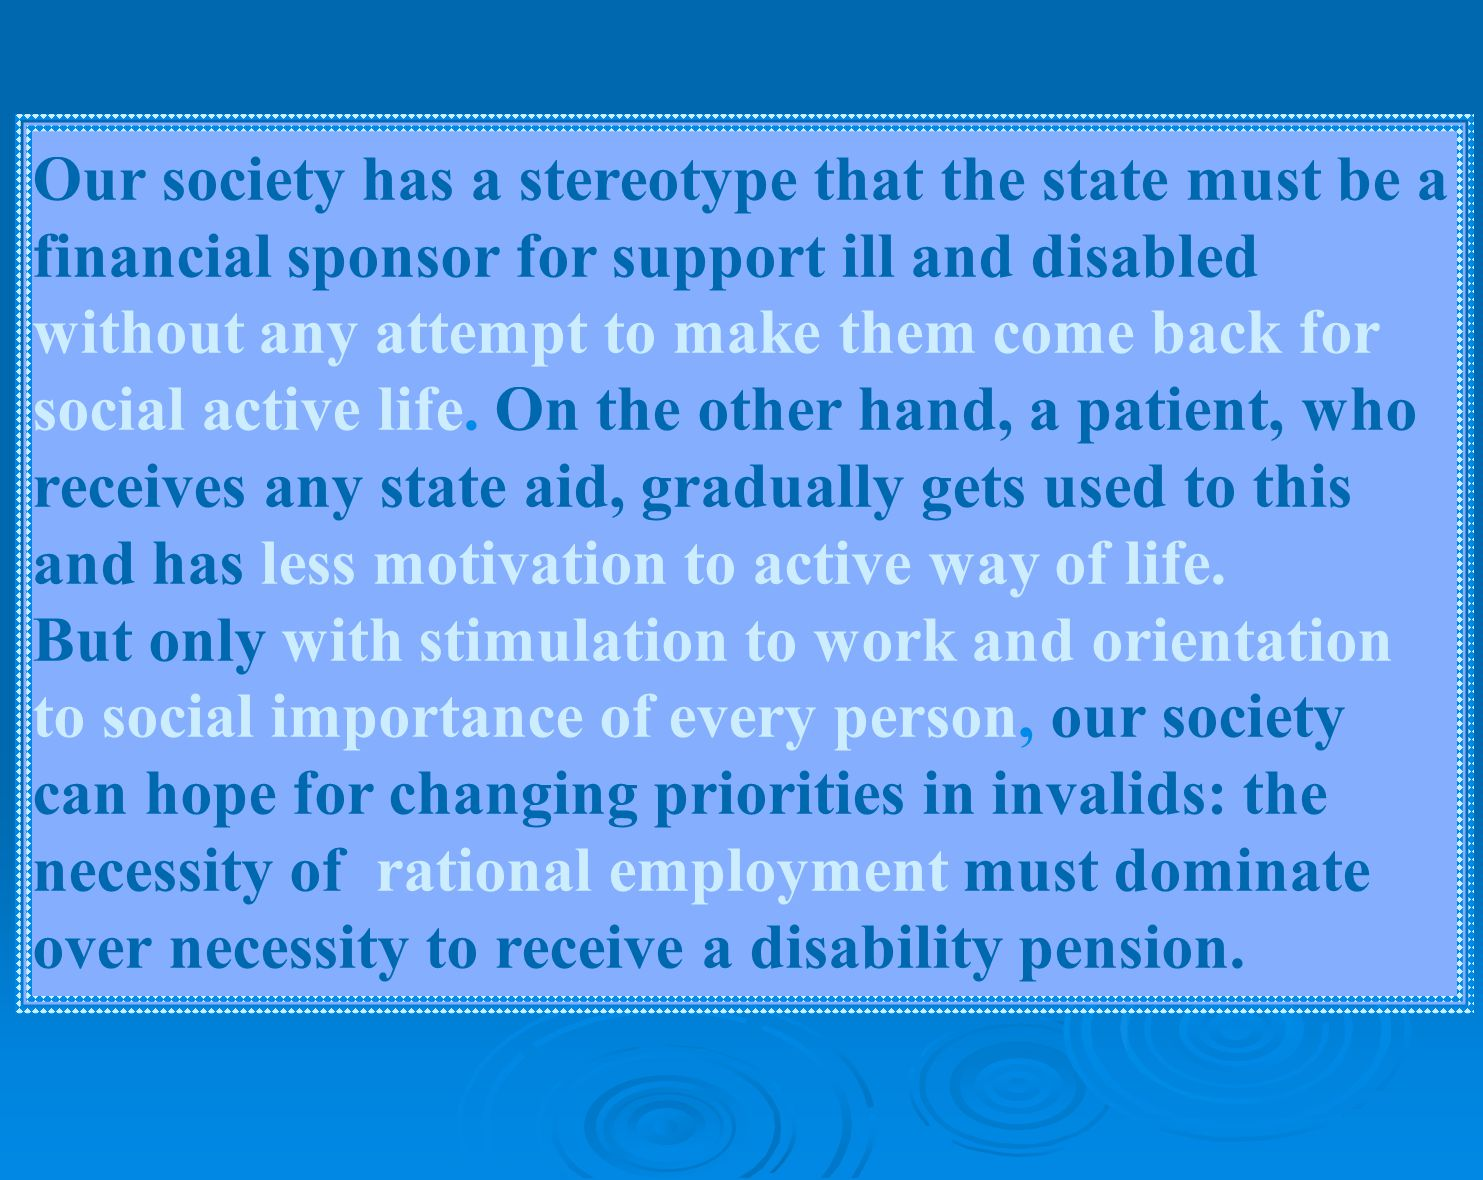 Our society has a stereotype that the state must be a financial sponsor for support ill and disabled without any attempt to make them come back for social active life.